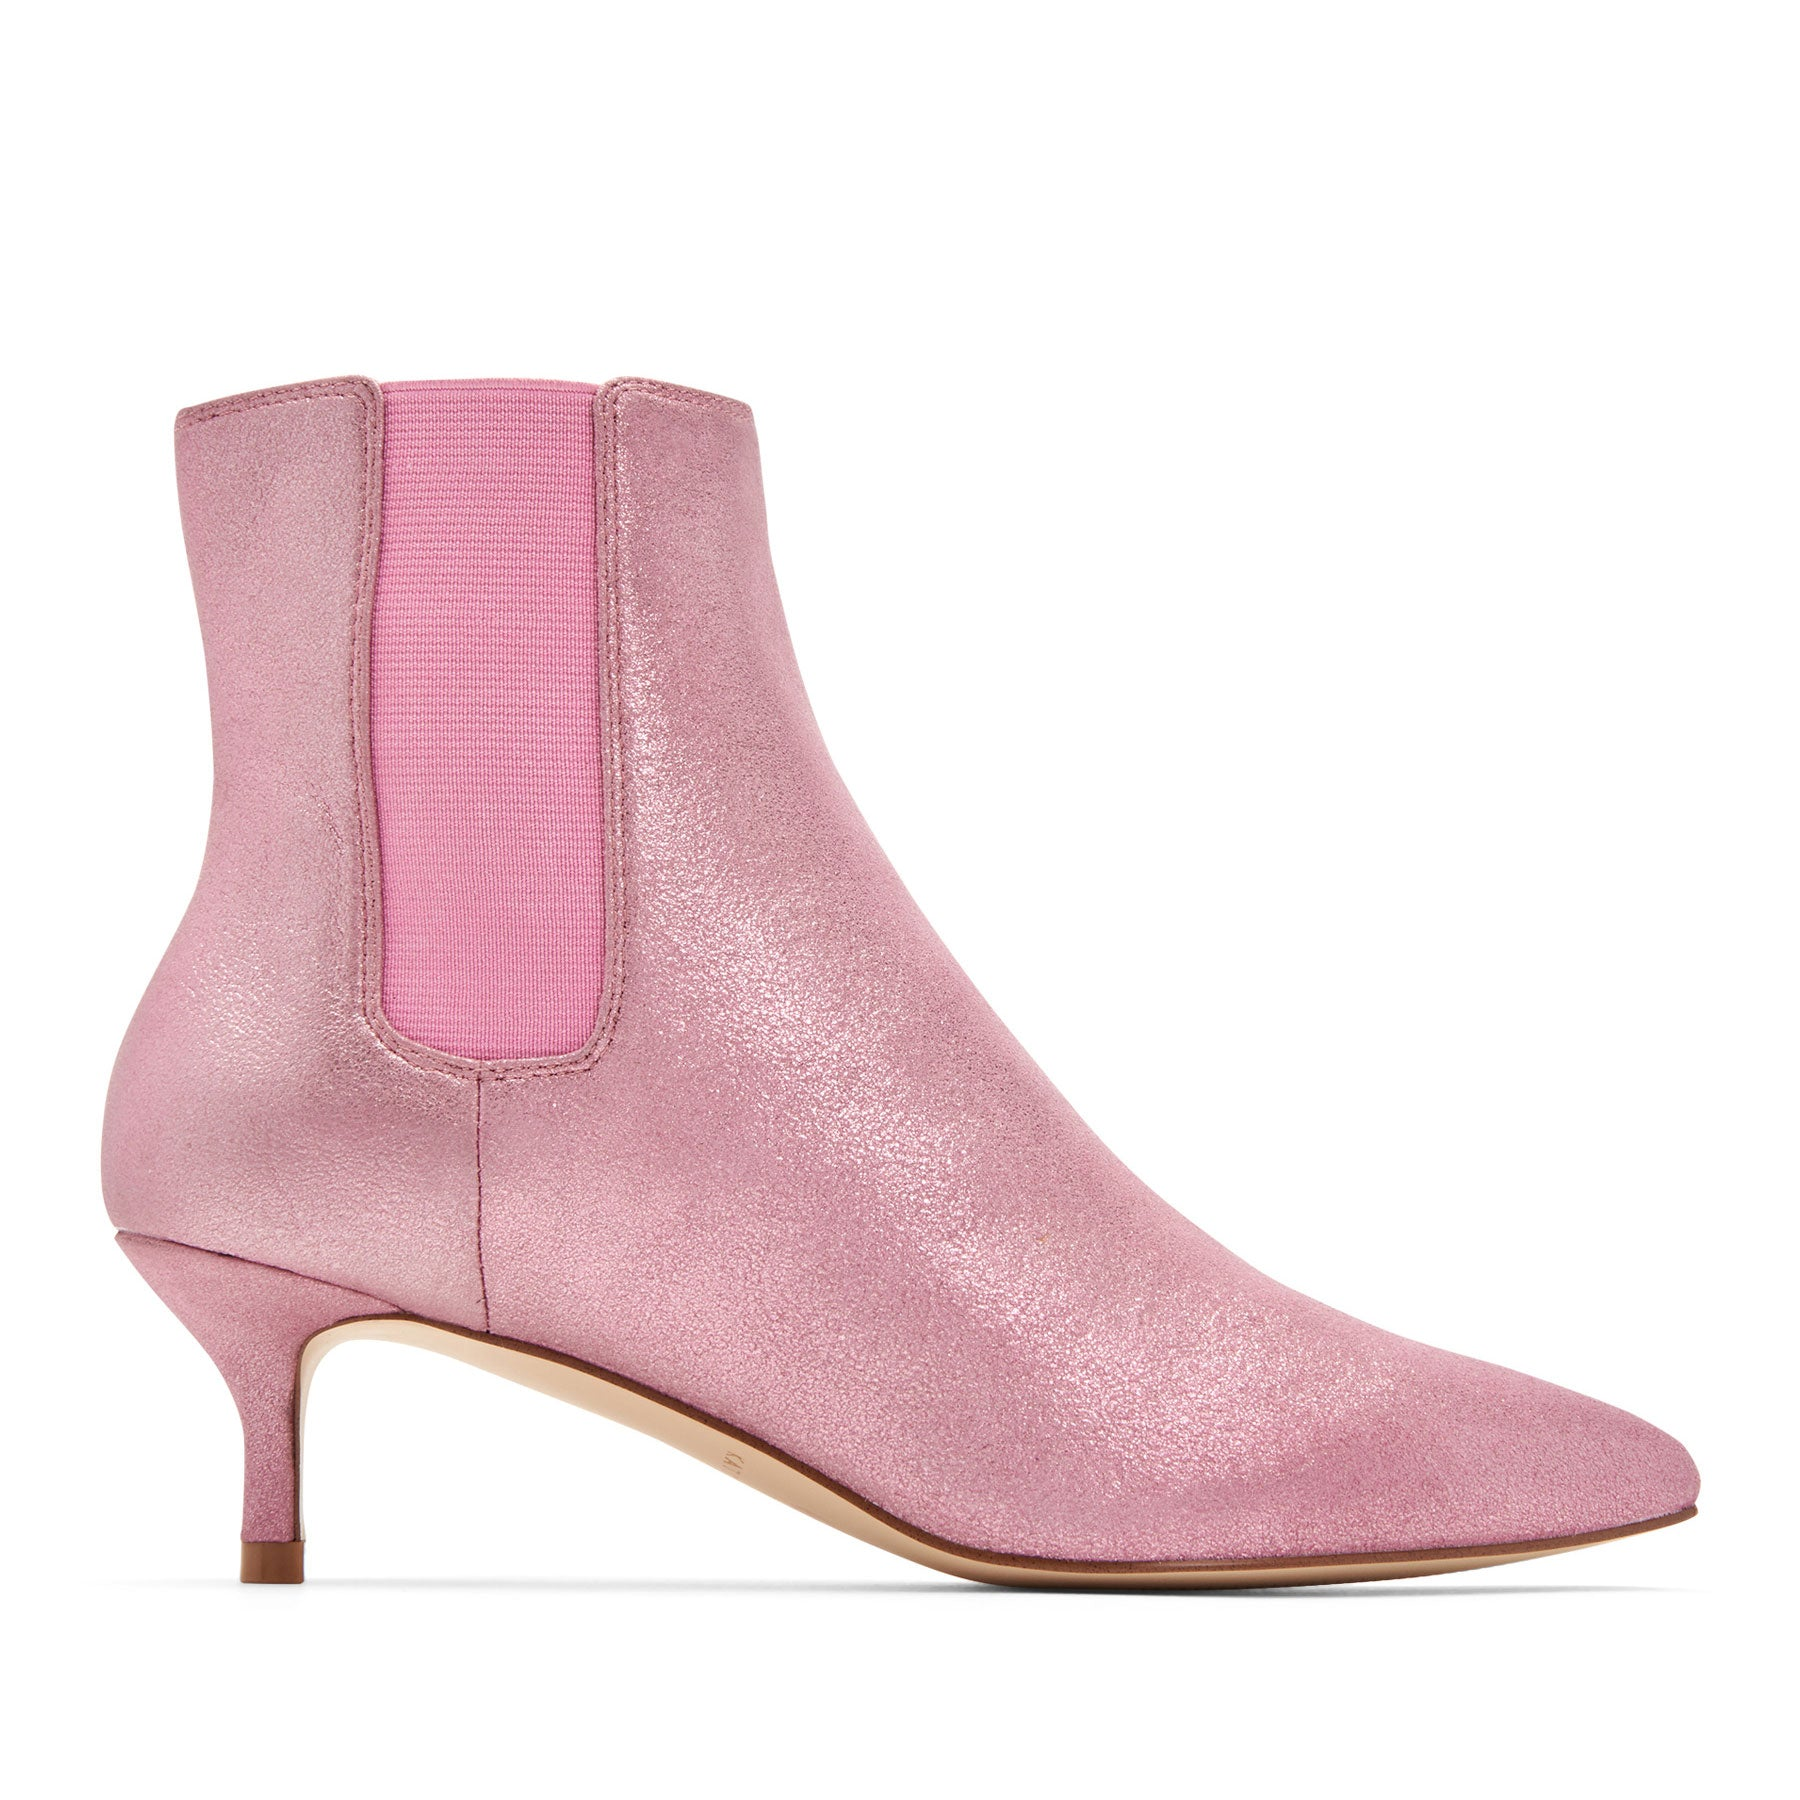 katy perry heeled boot metallic in pink size 6   the joan